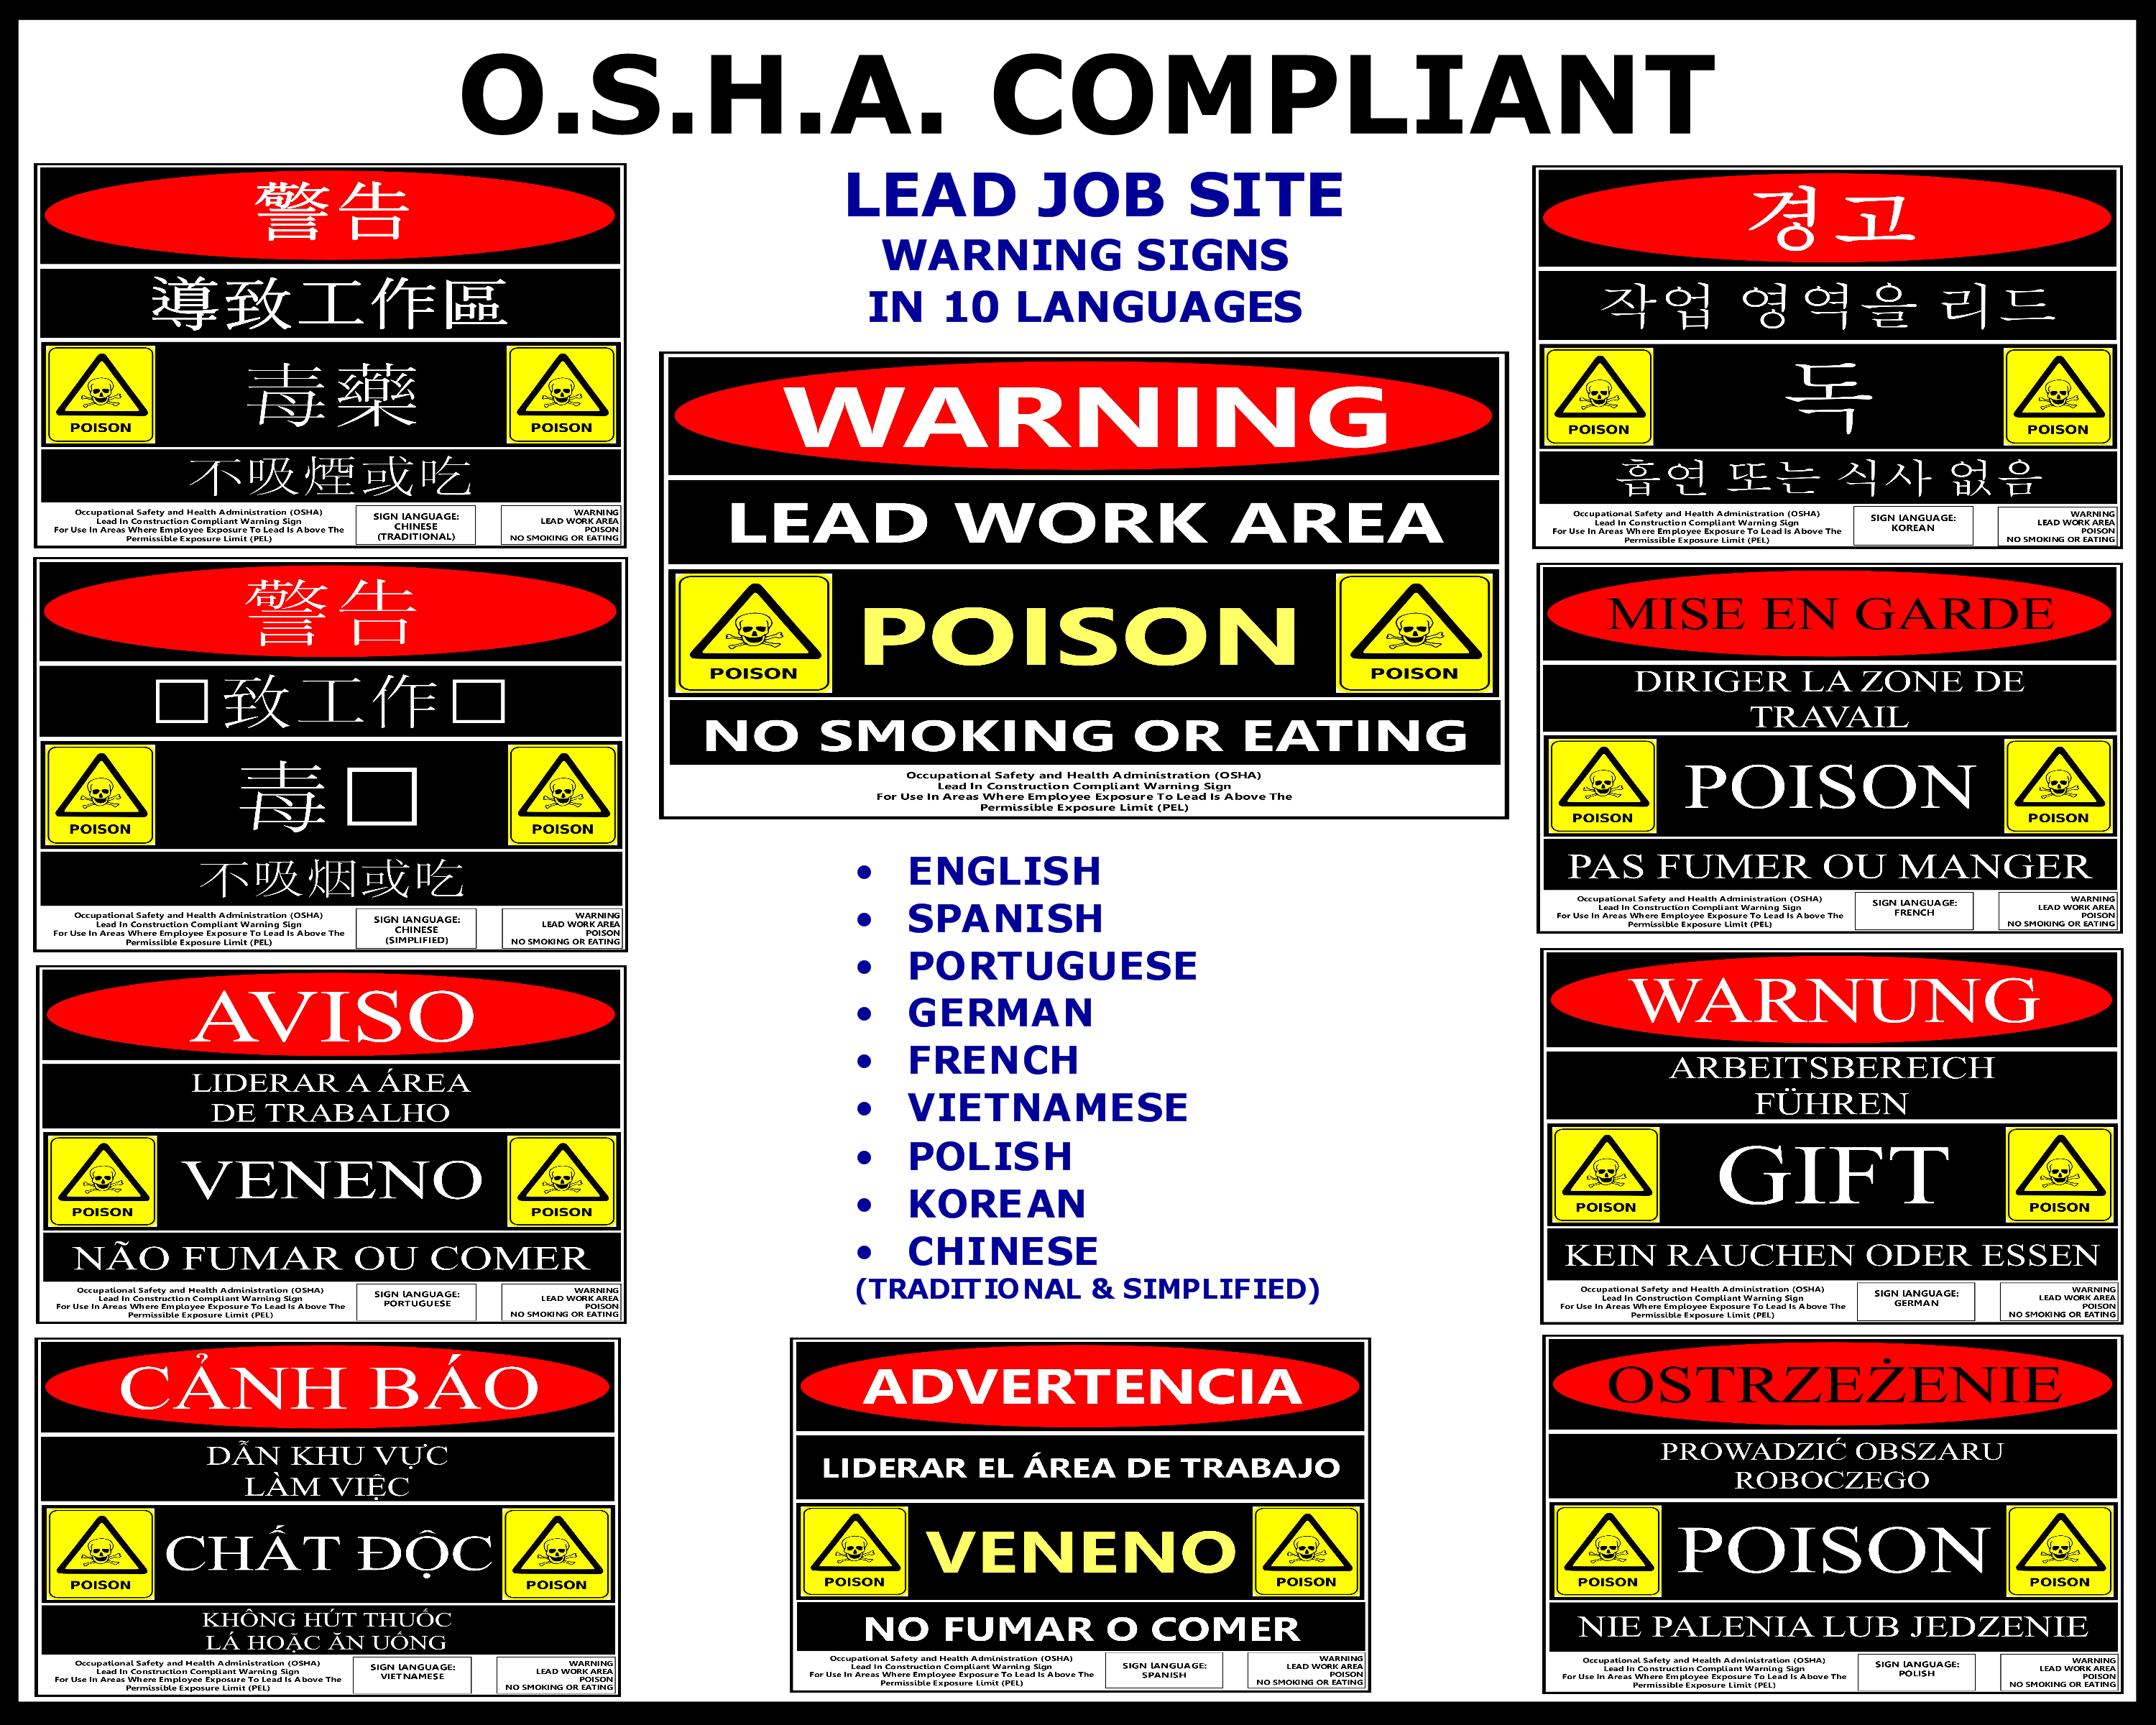 Lead Job Site Warning Signs, Osha Compliant Order, Save. The Tradeshow Display Store Air Hand Dryer. Human Capital Strategic Plan. Real Estate Agent Newsletter. Masters In Computer Engineering. Personalized Business Gifts Cheap. Whirlpool Repair Houston Grad School Research. Vanguard International Bond 4g Lte Wireless. Crozer Chester Burn Center Crm Traverse City